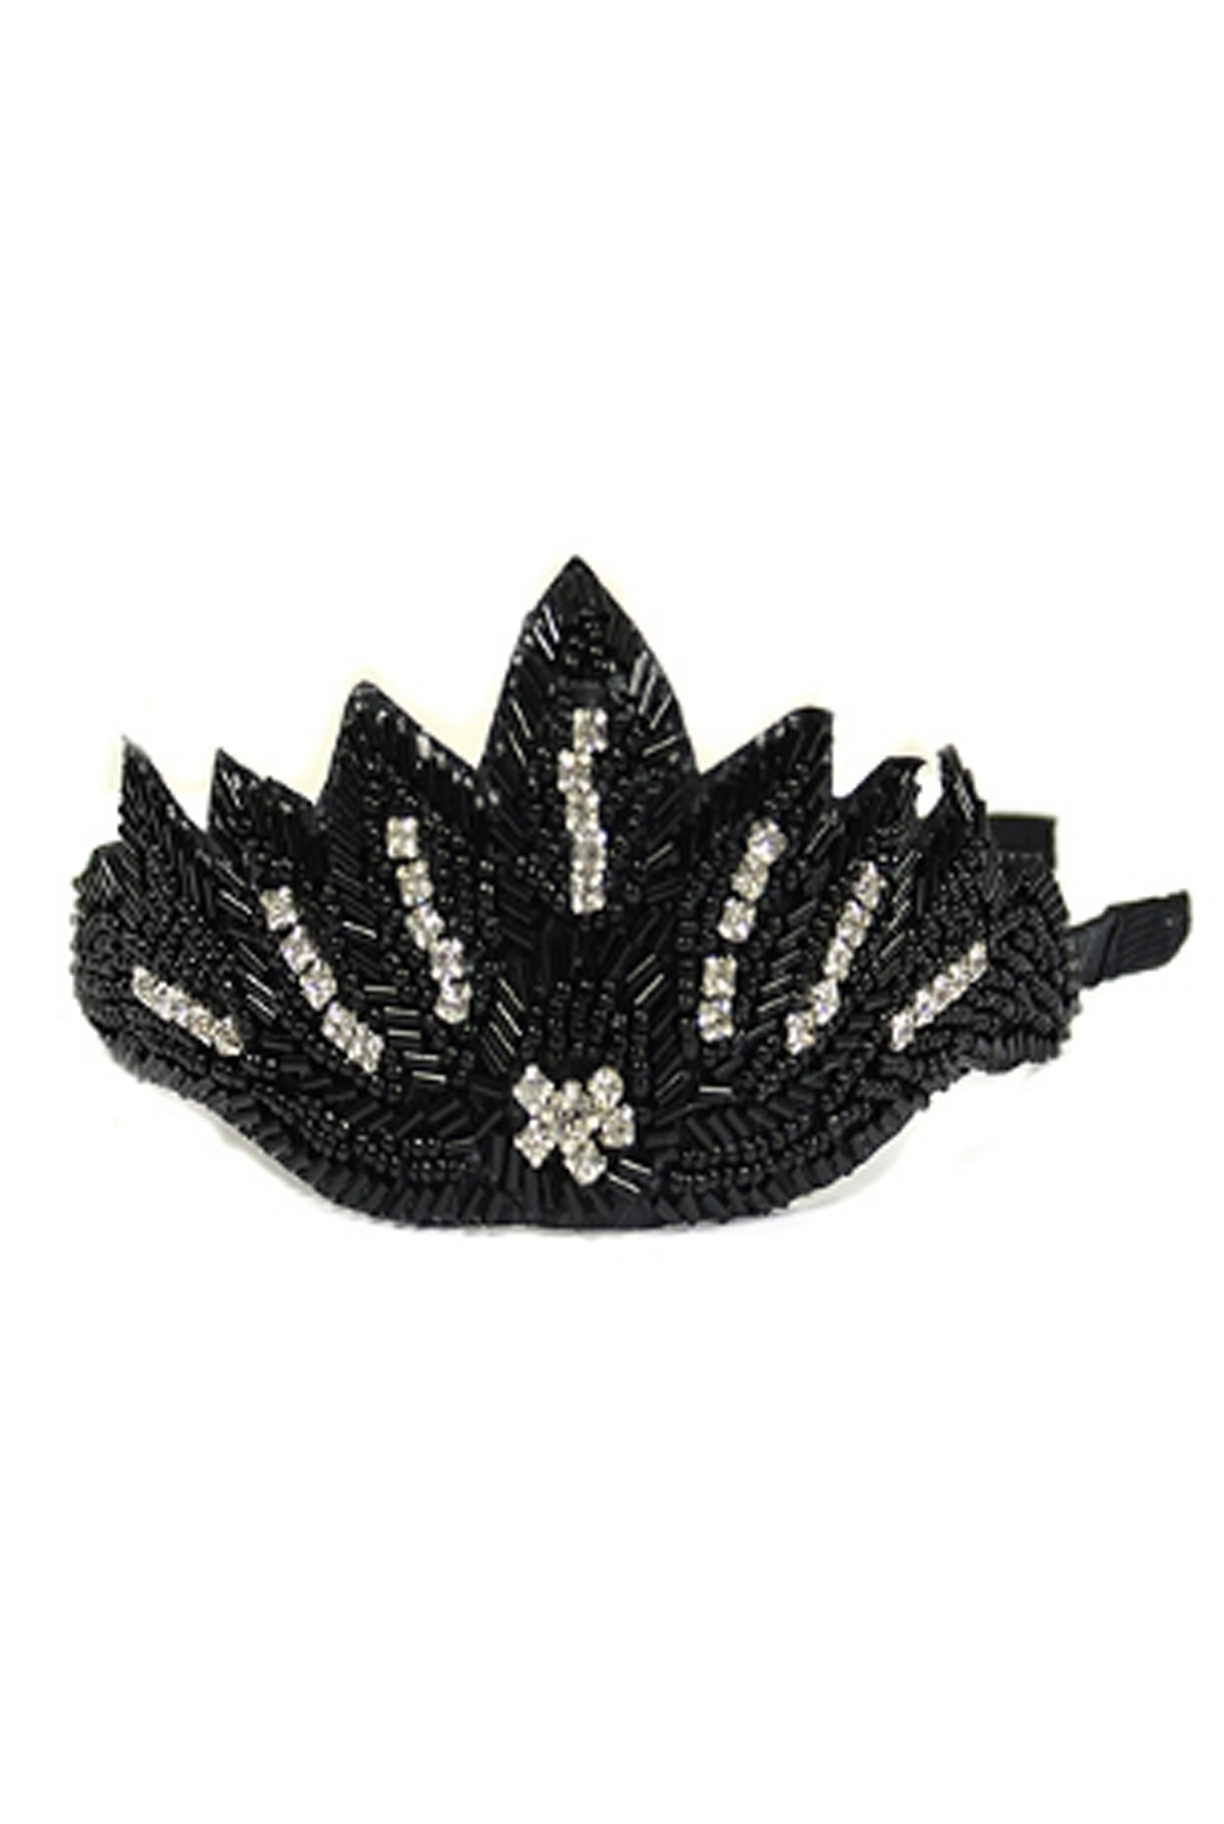 'The Charleston' Headband - Black